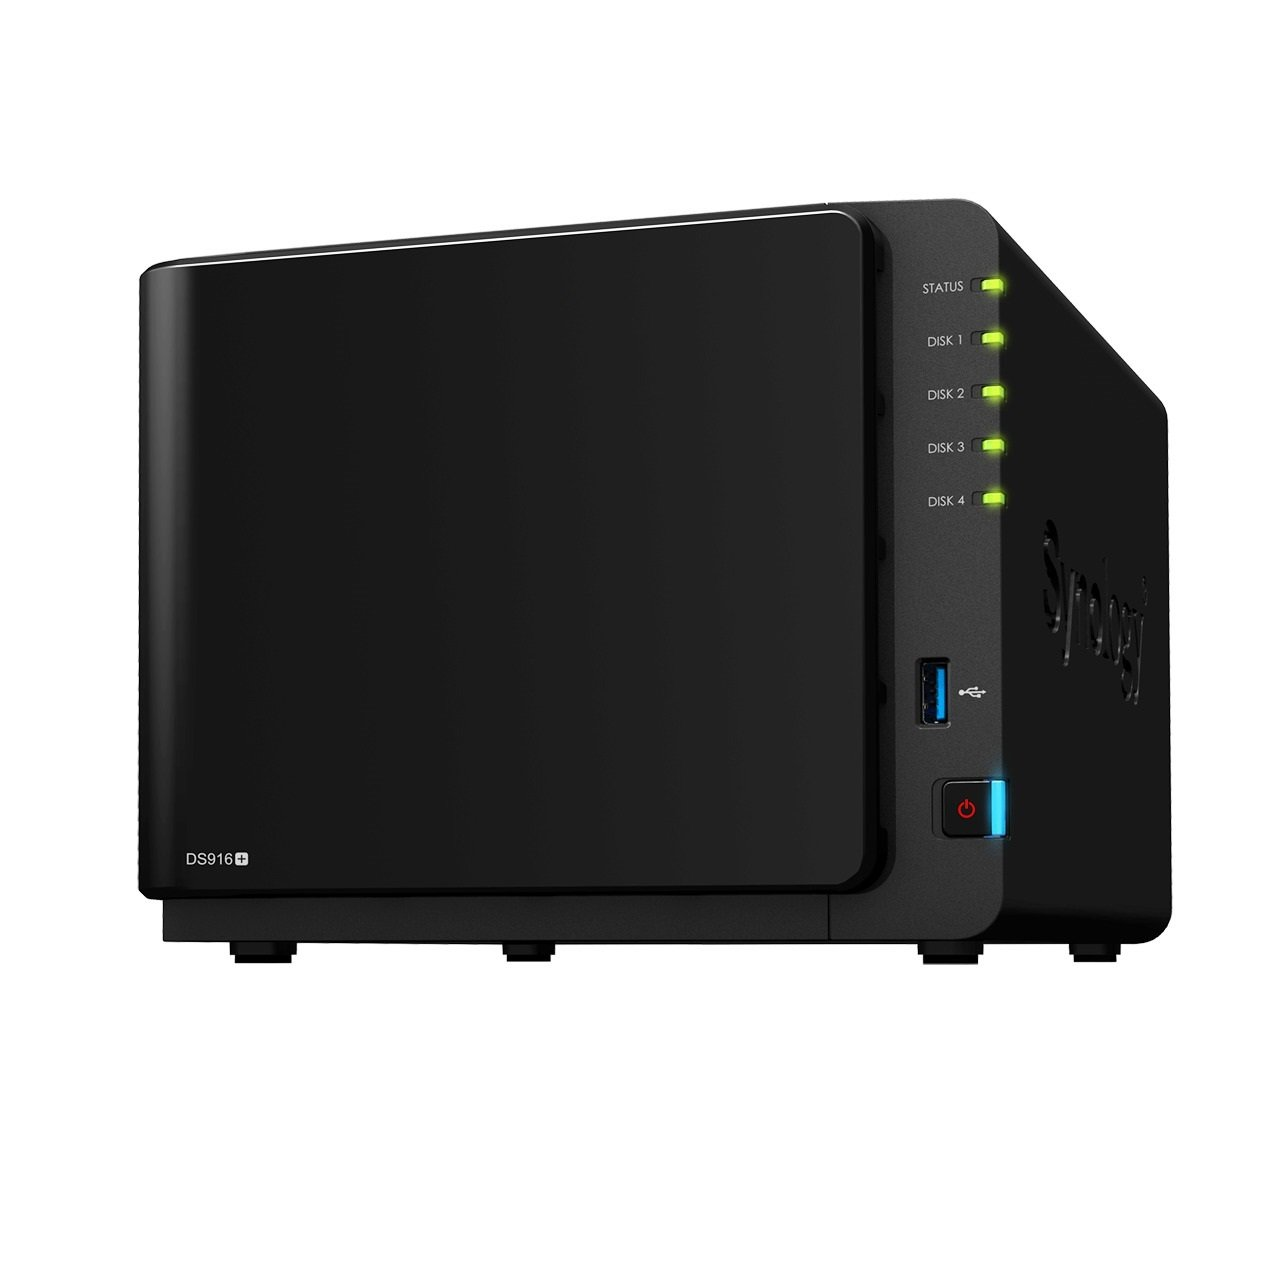 TALLA Enclosure. Synology Serie Plus DS916+ - Dispositivo de Almacenamiento en Red (2 GB/8 GB, 3 Puertos USB 3.0, 2 Puertos LAN Gigabit, 1 Puerto eSATA), Negro